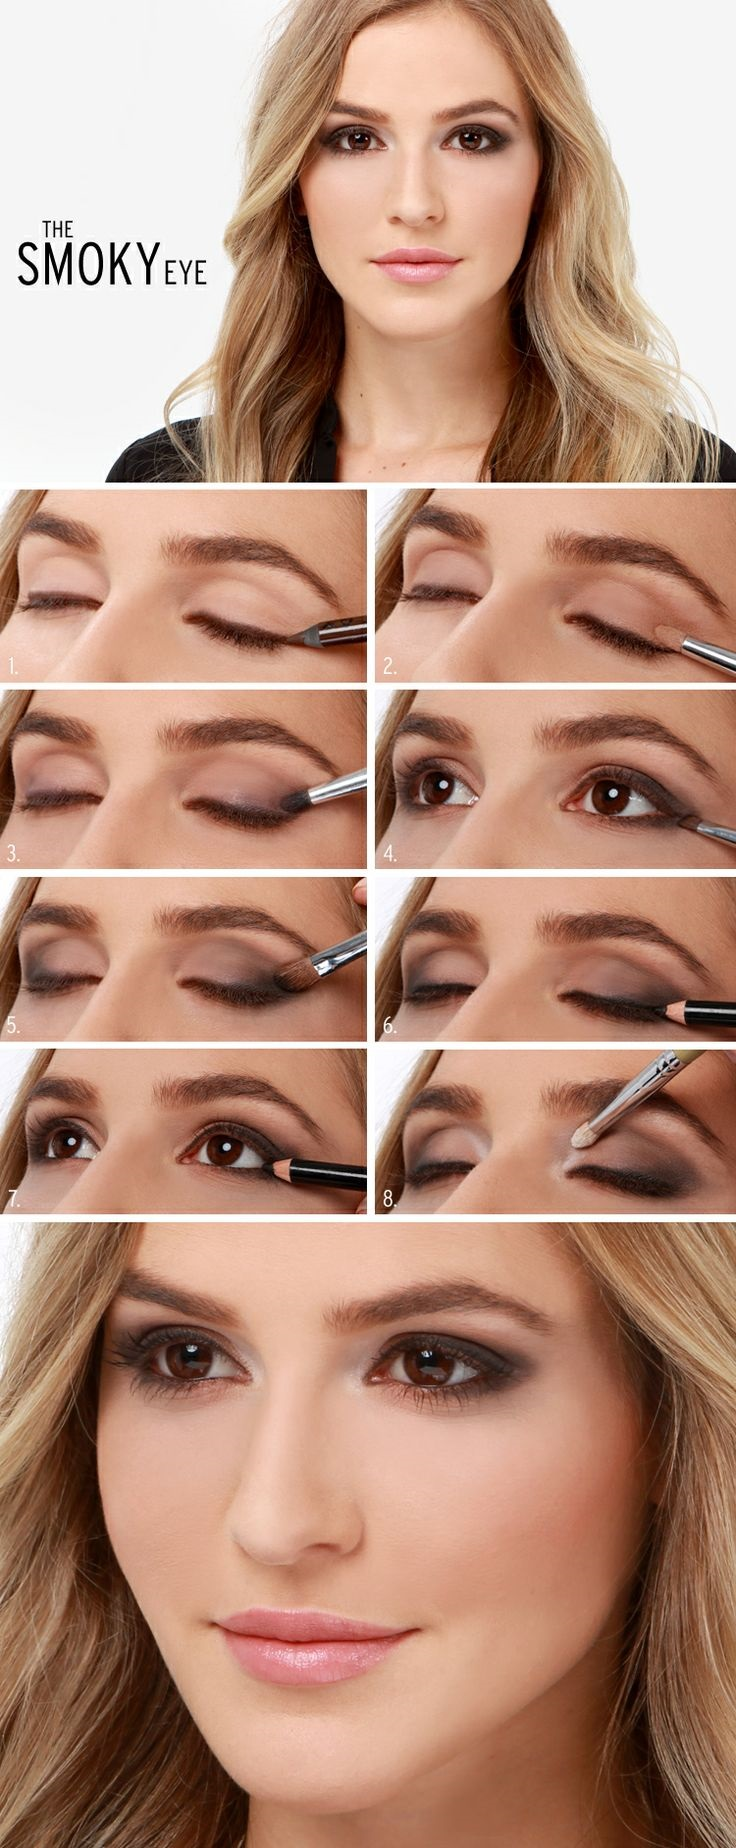 The-Smoky-Eye-Makeup-Tutorial